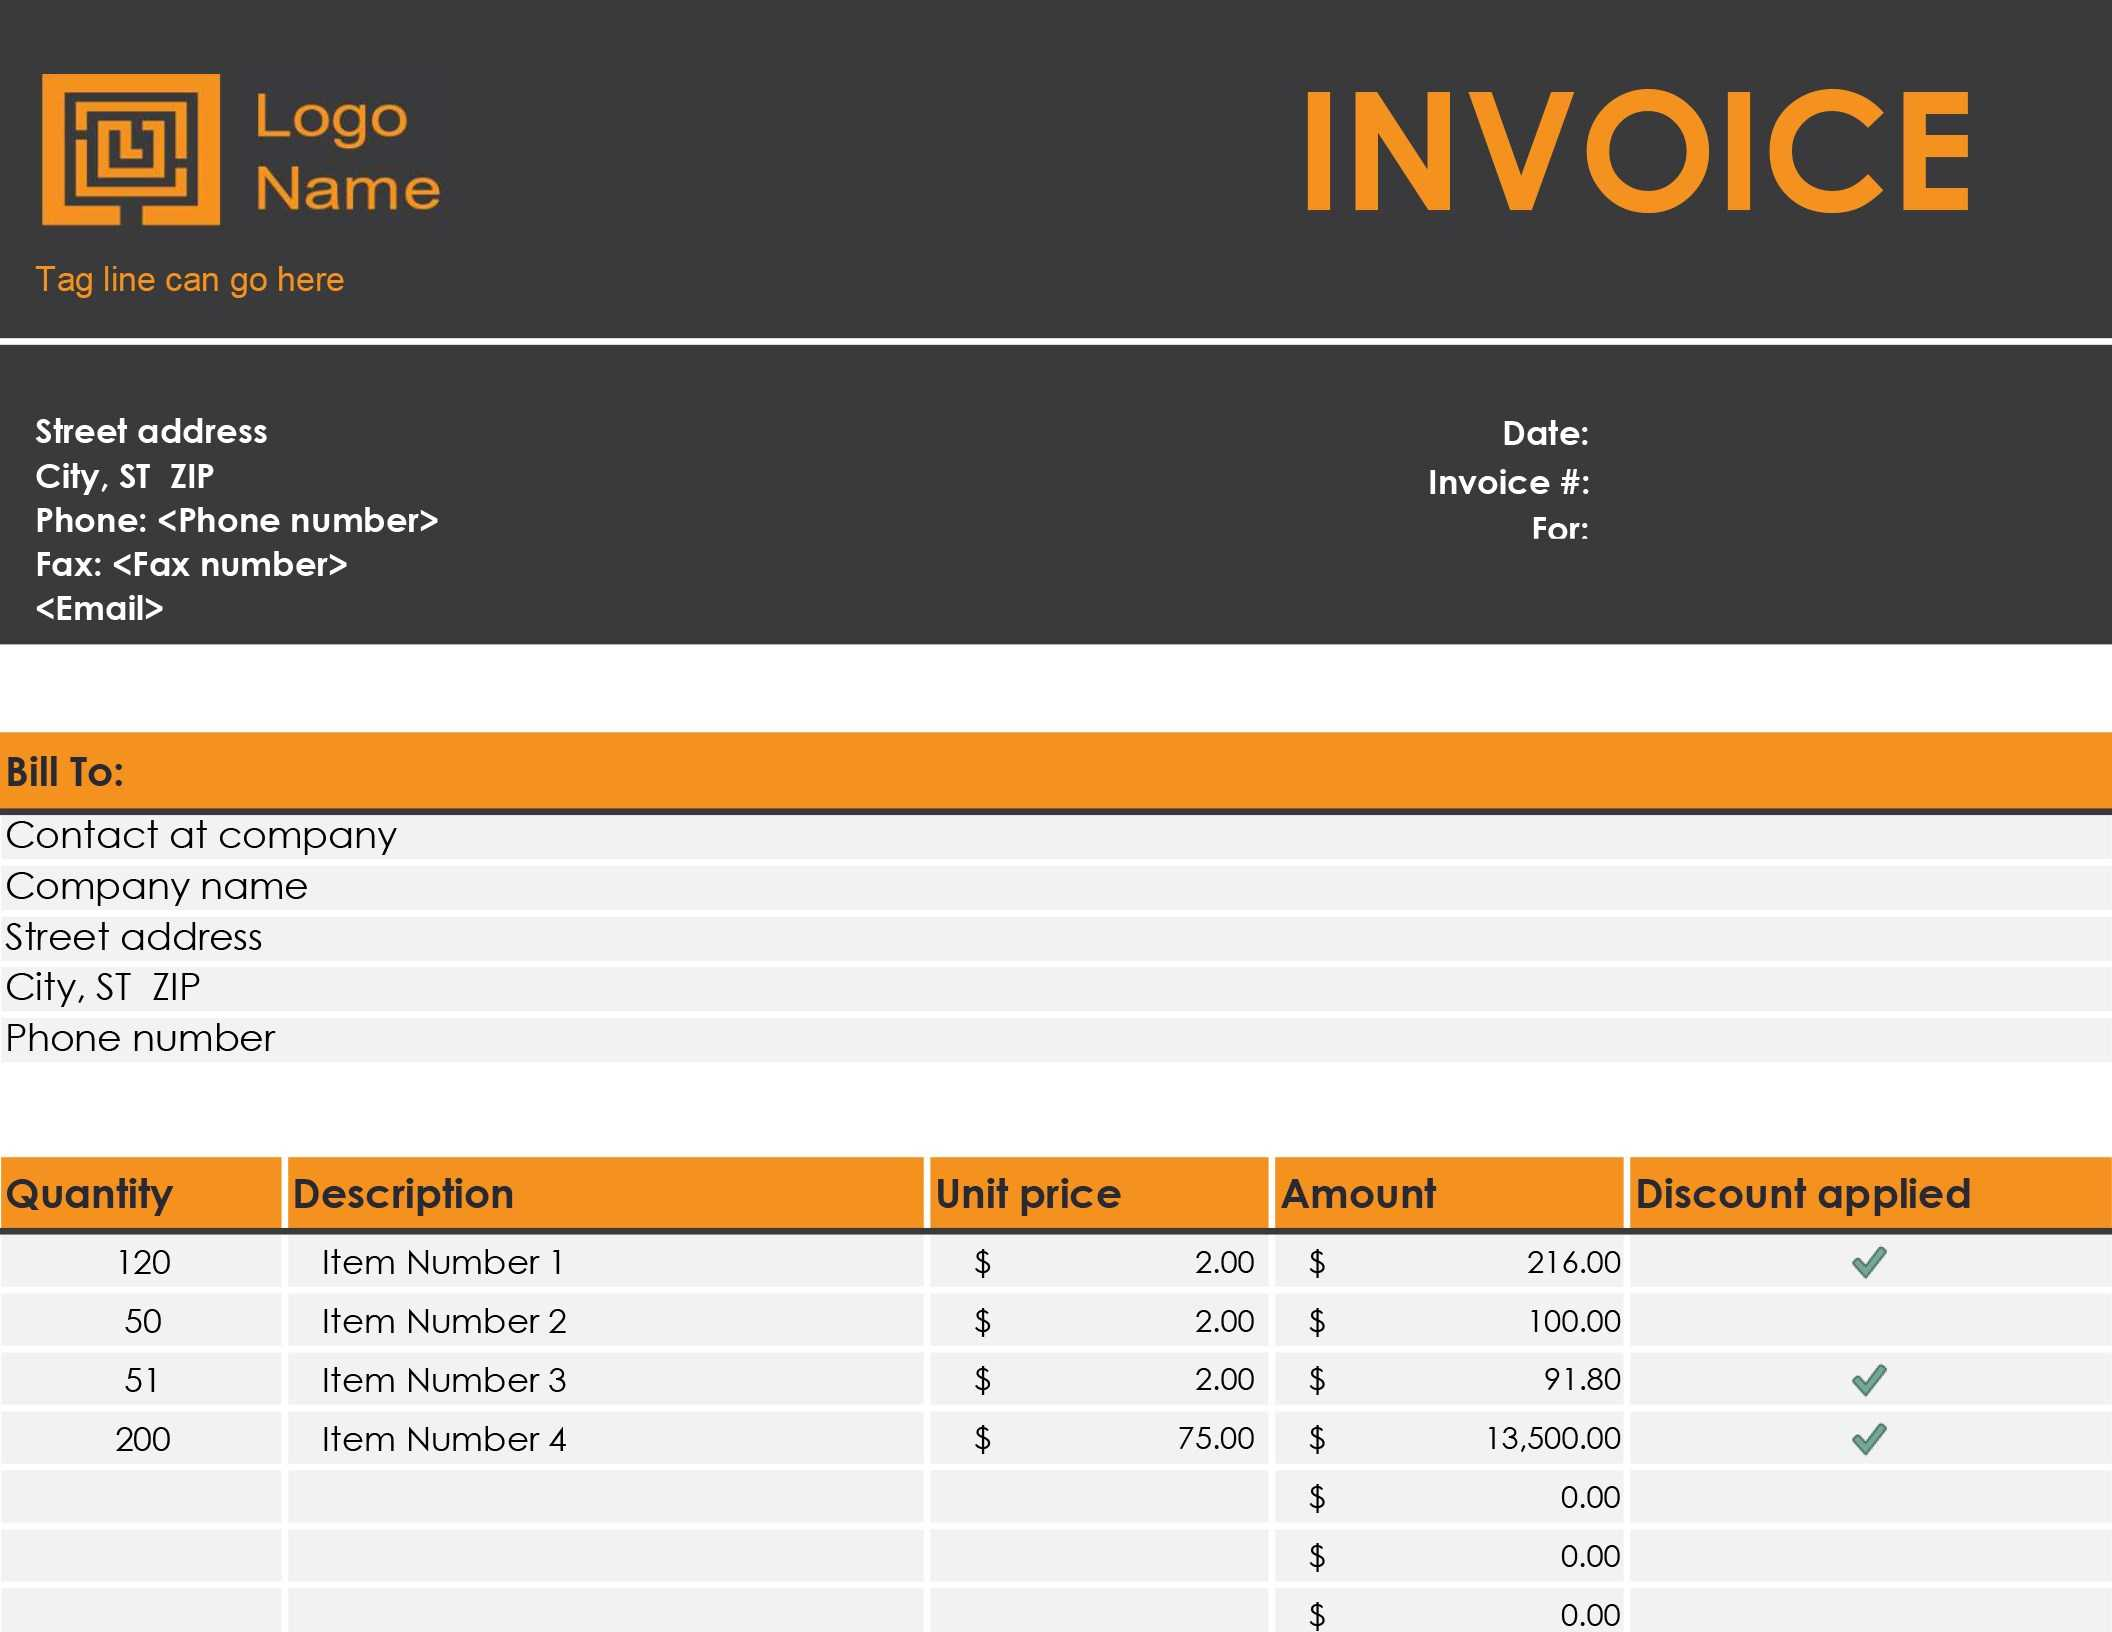 Invoices - Office With Invoice Template Word 2010 with regard to Invoice Template Word 2010